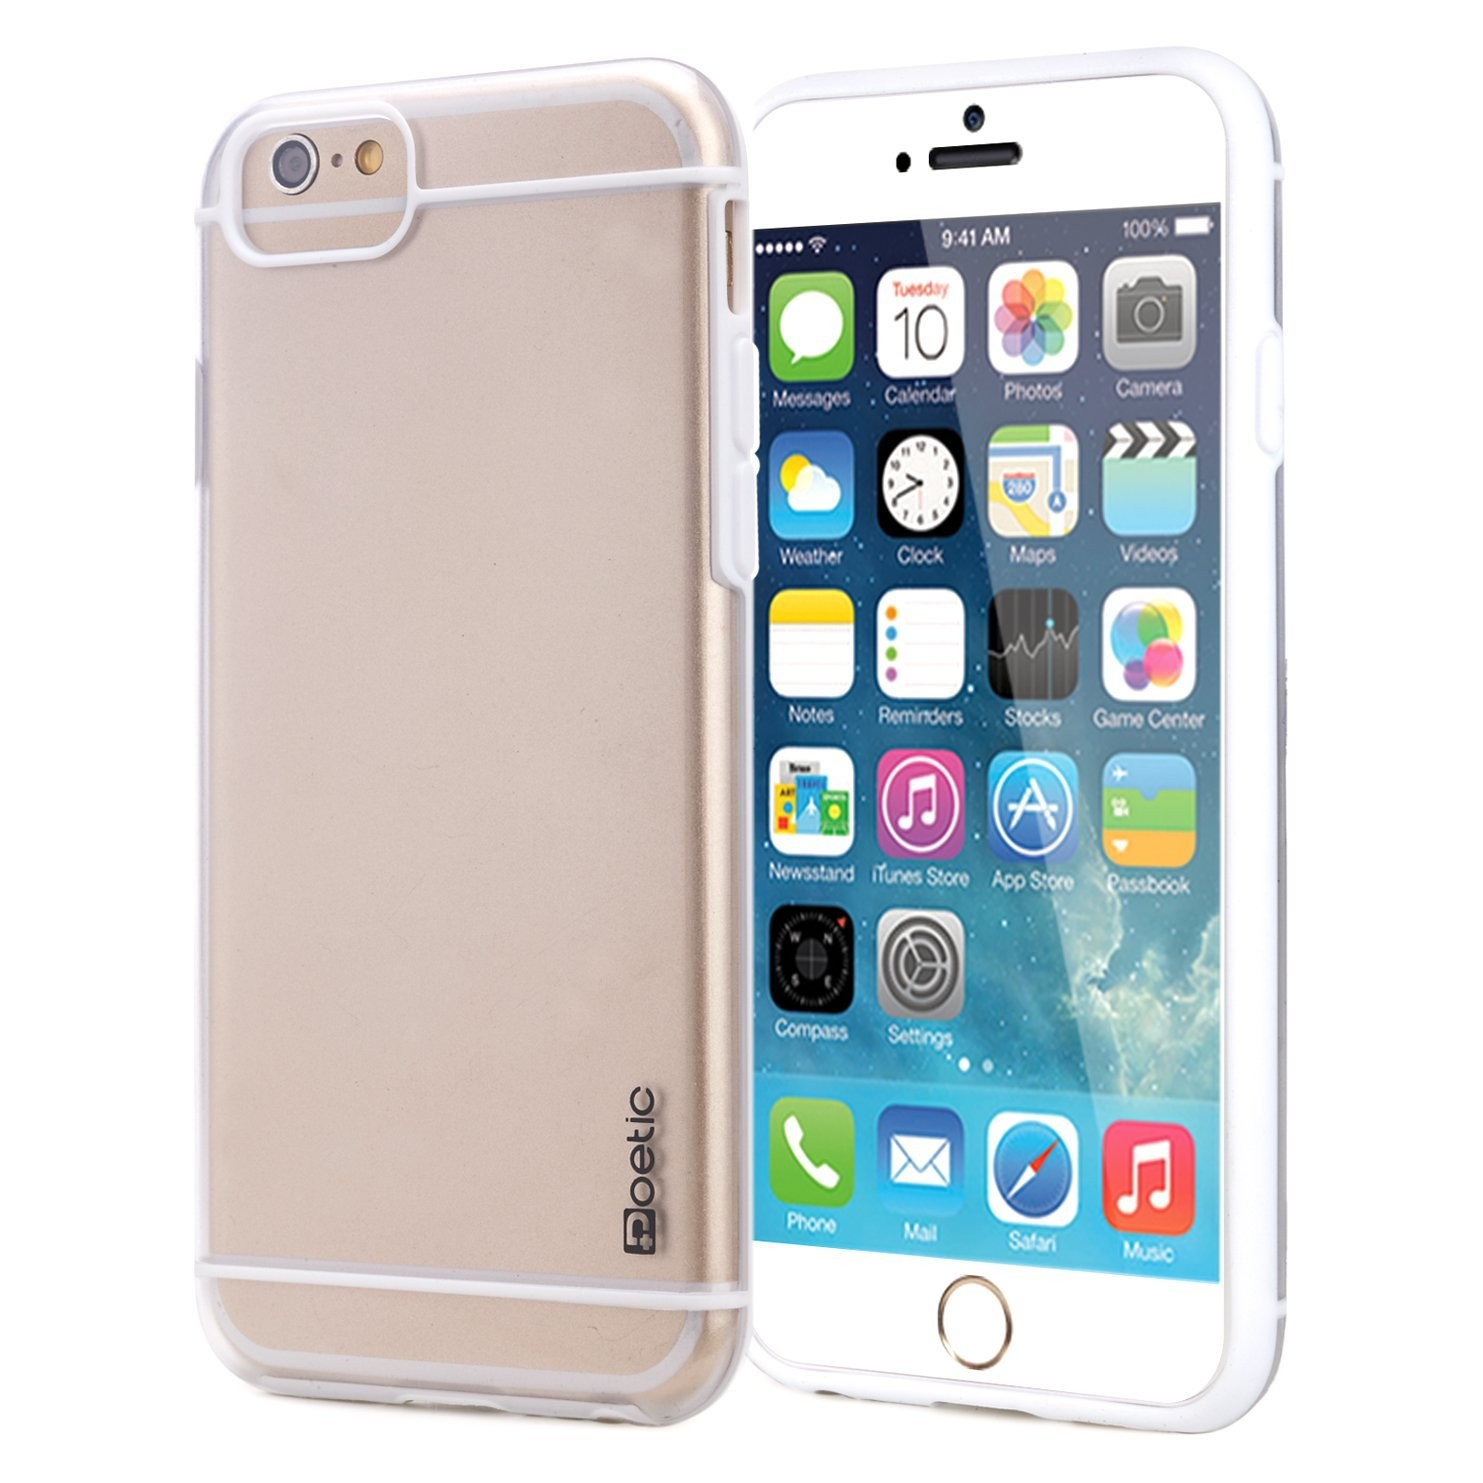 Our favorite clear cases for iPhone 6